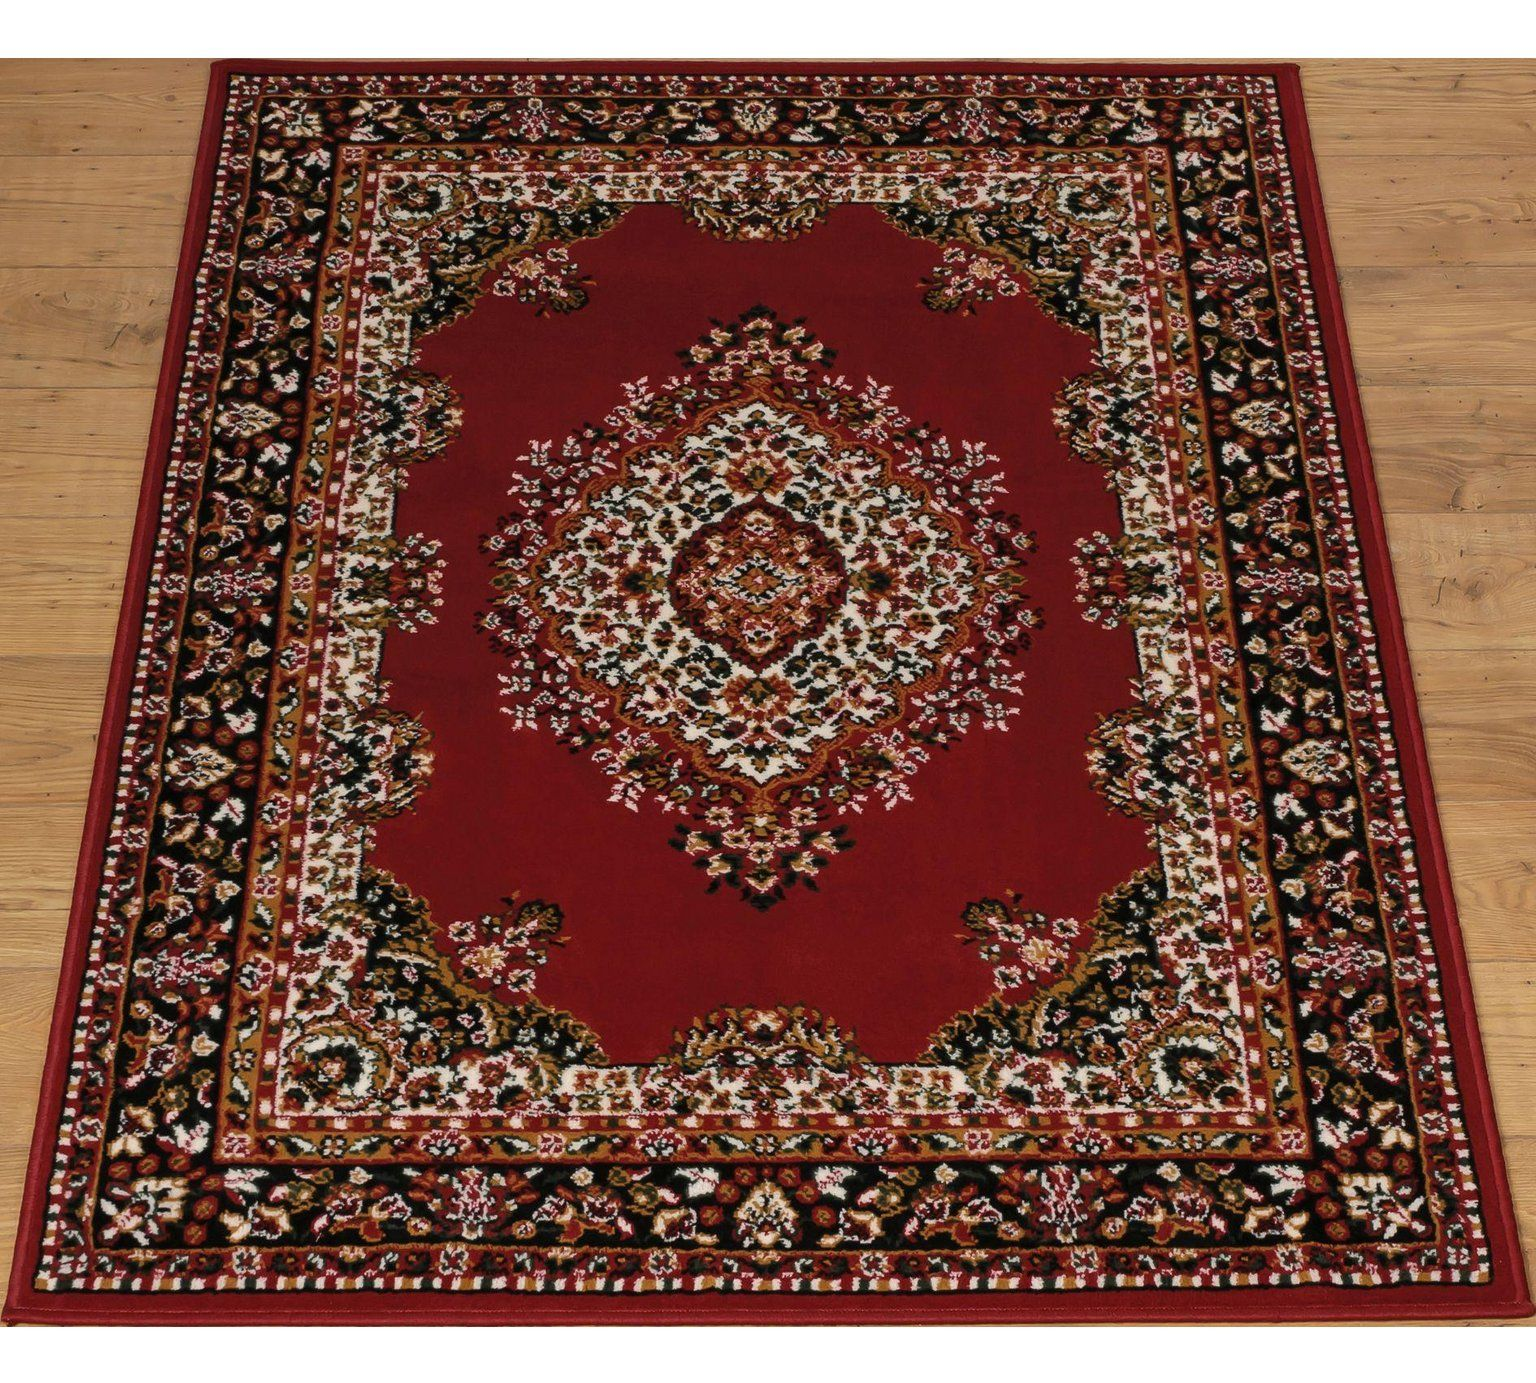 Home Bukhura Traditional Rug 160x120cm Red At Argos Co Uk